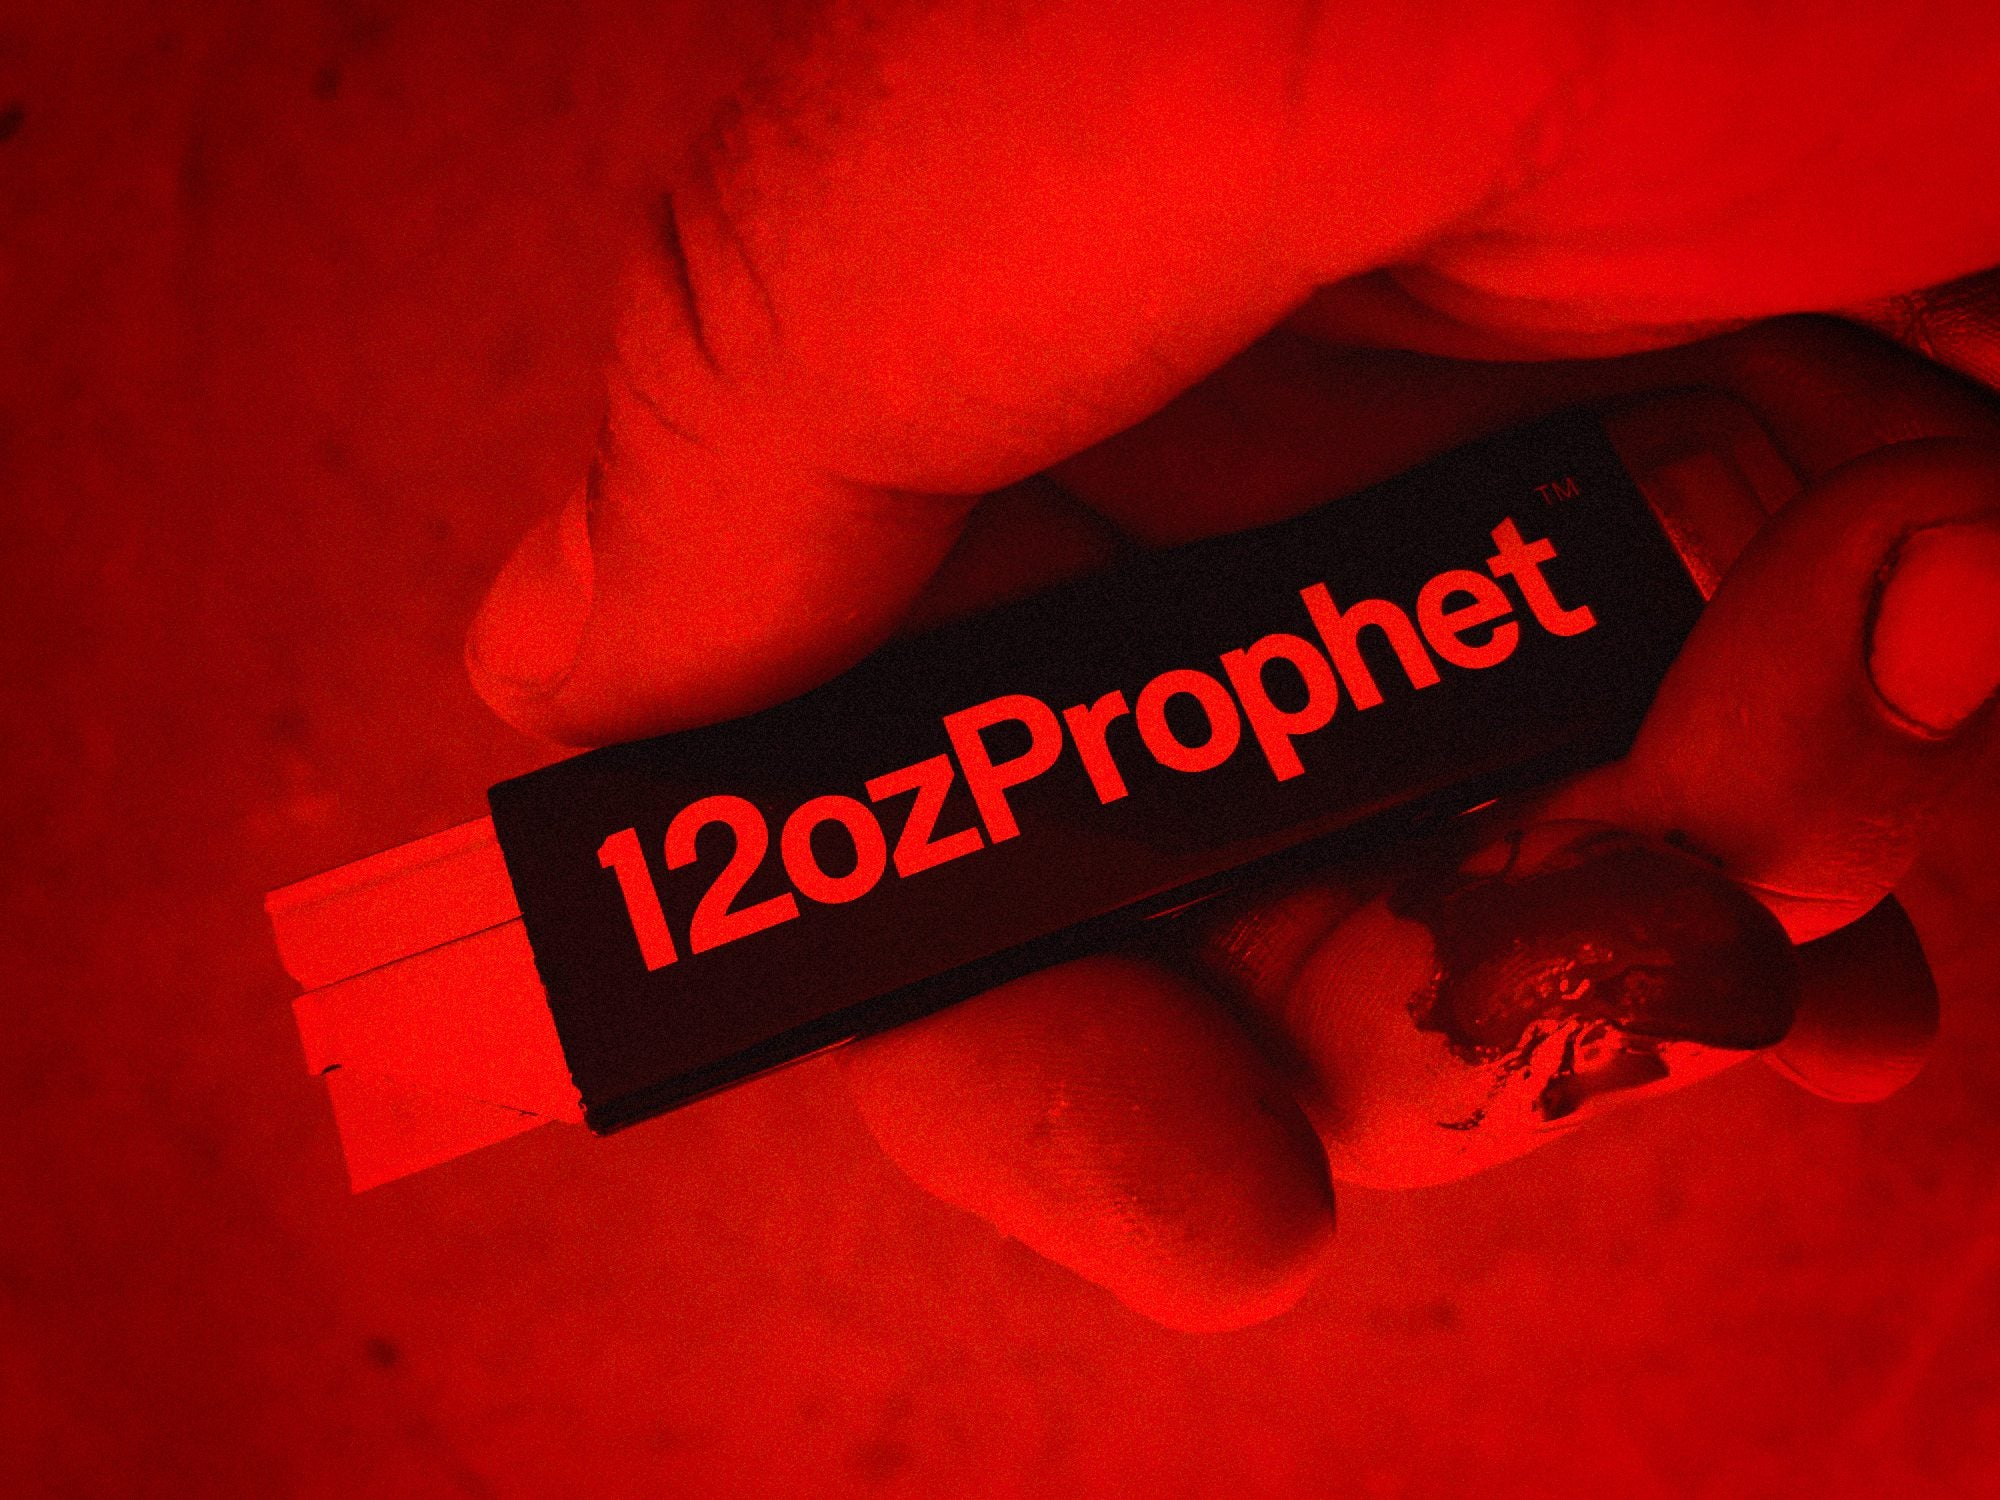 12ozProphet Box Cutter